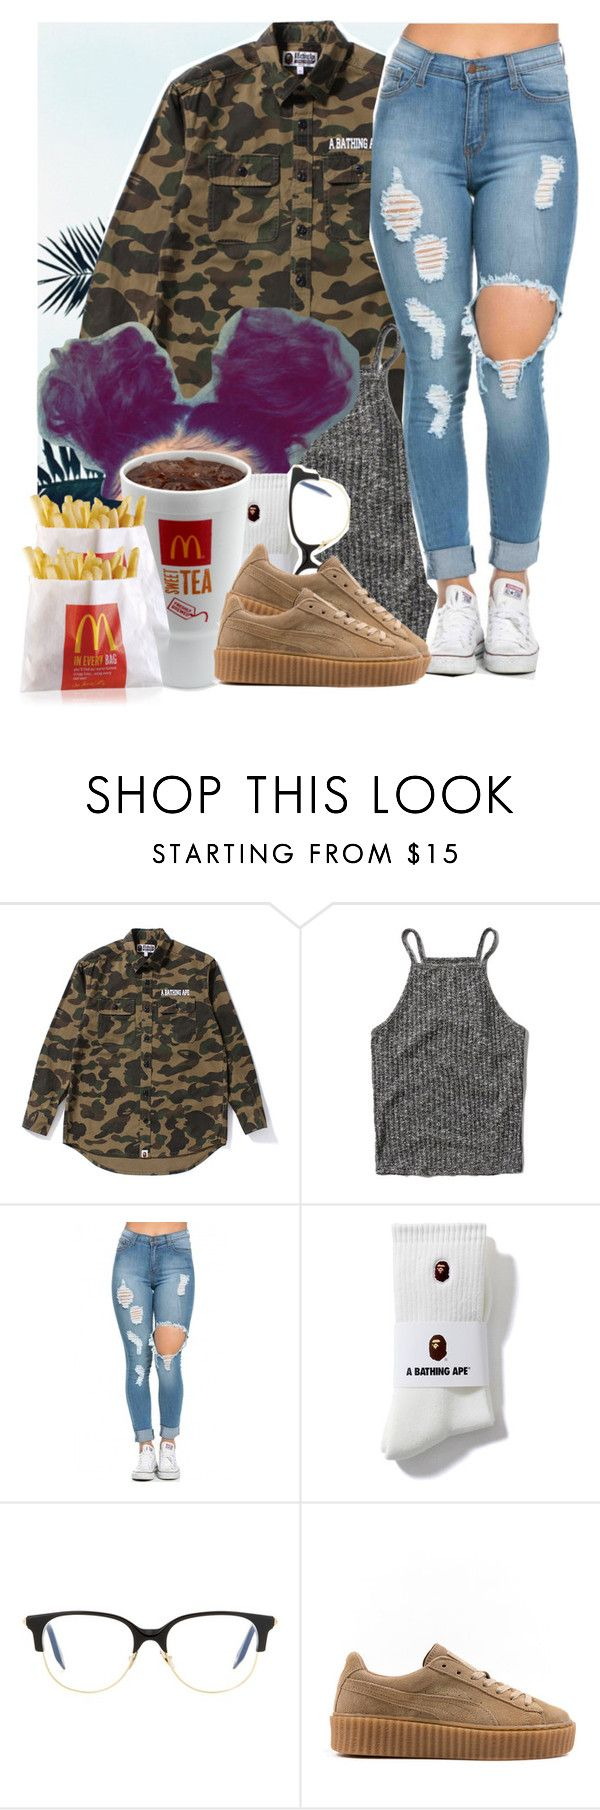 """"""""""" by drakeschild ❤ liked on Polyvore featuring Prada, Abercrombie & Fitch, Victoria Beckham, Puma and CO"""